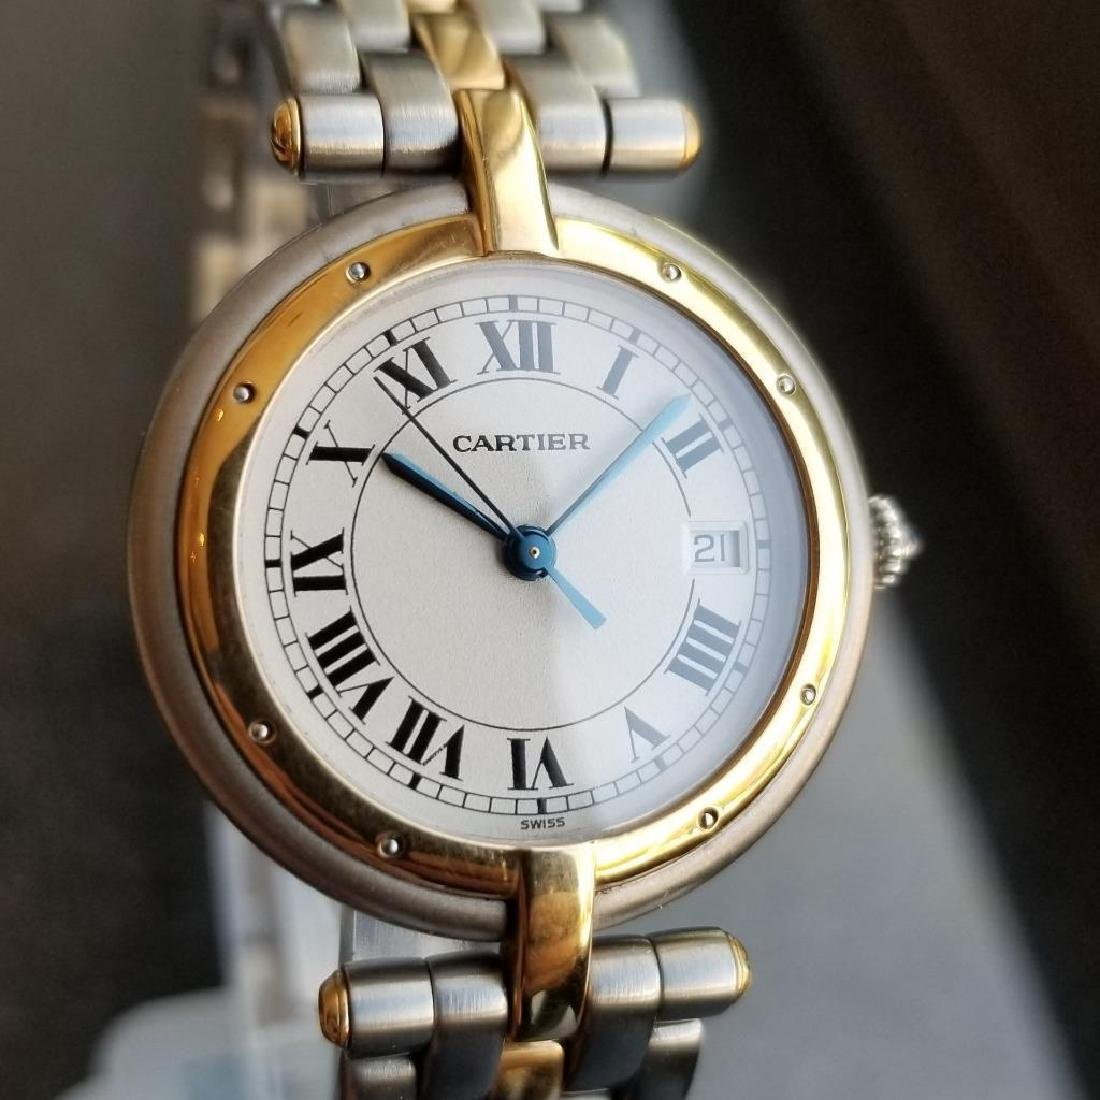 Cartier Panthere Round 1990s Unisex 18k Gold/SS Luxury